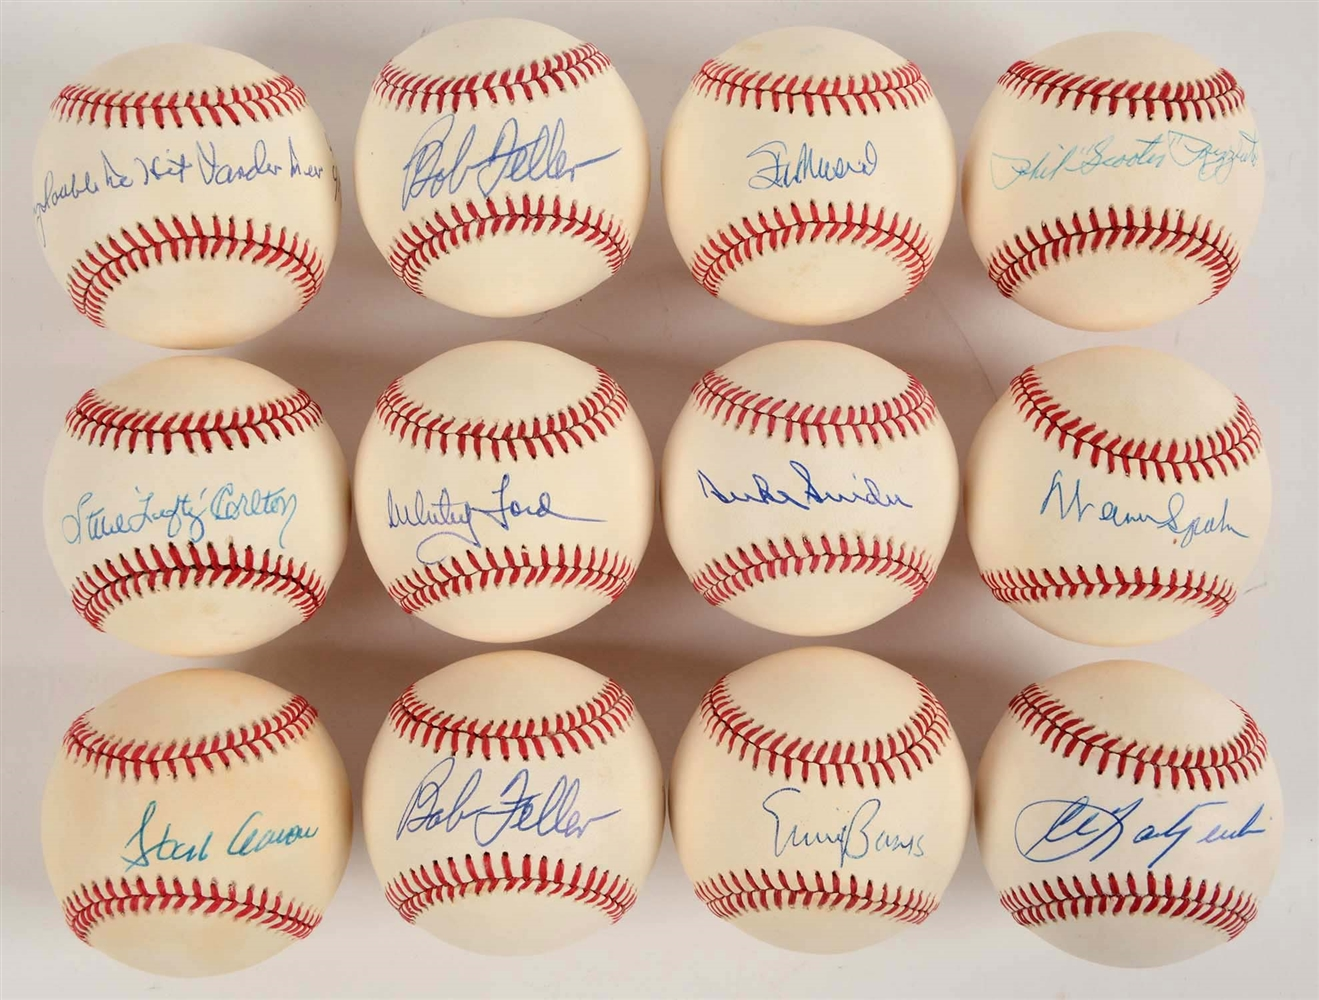 Lot of 12: Single Signed Baseballs Including Hank Aaron.